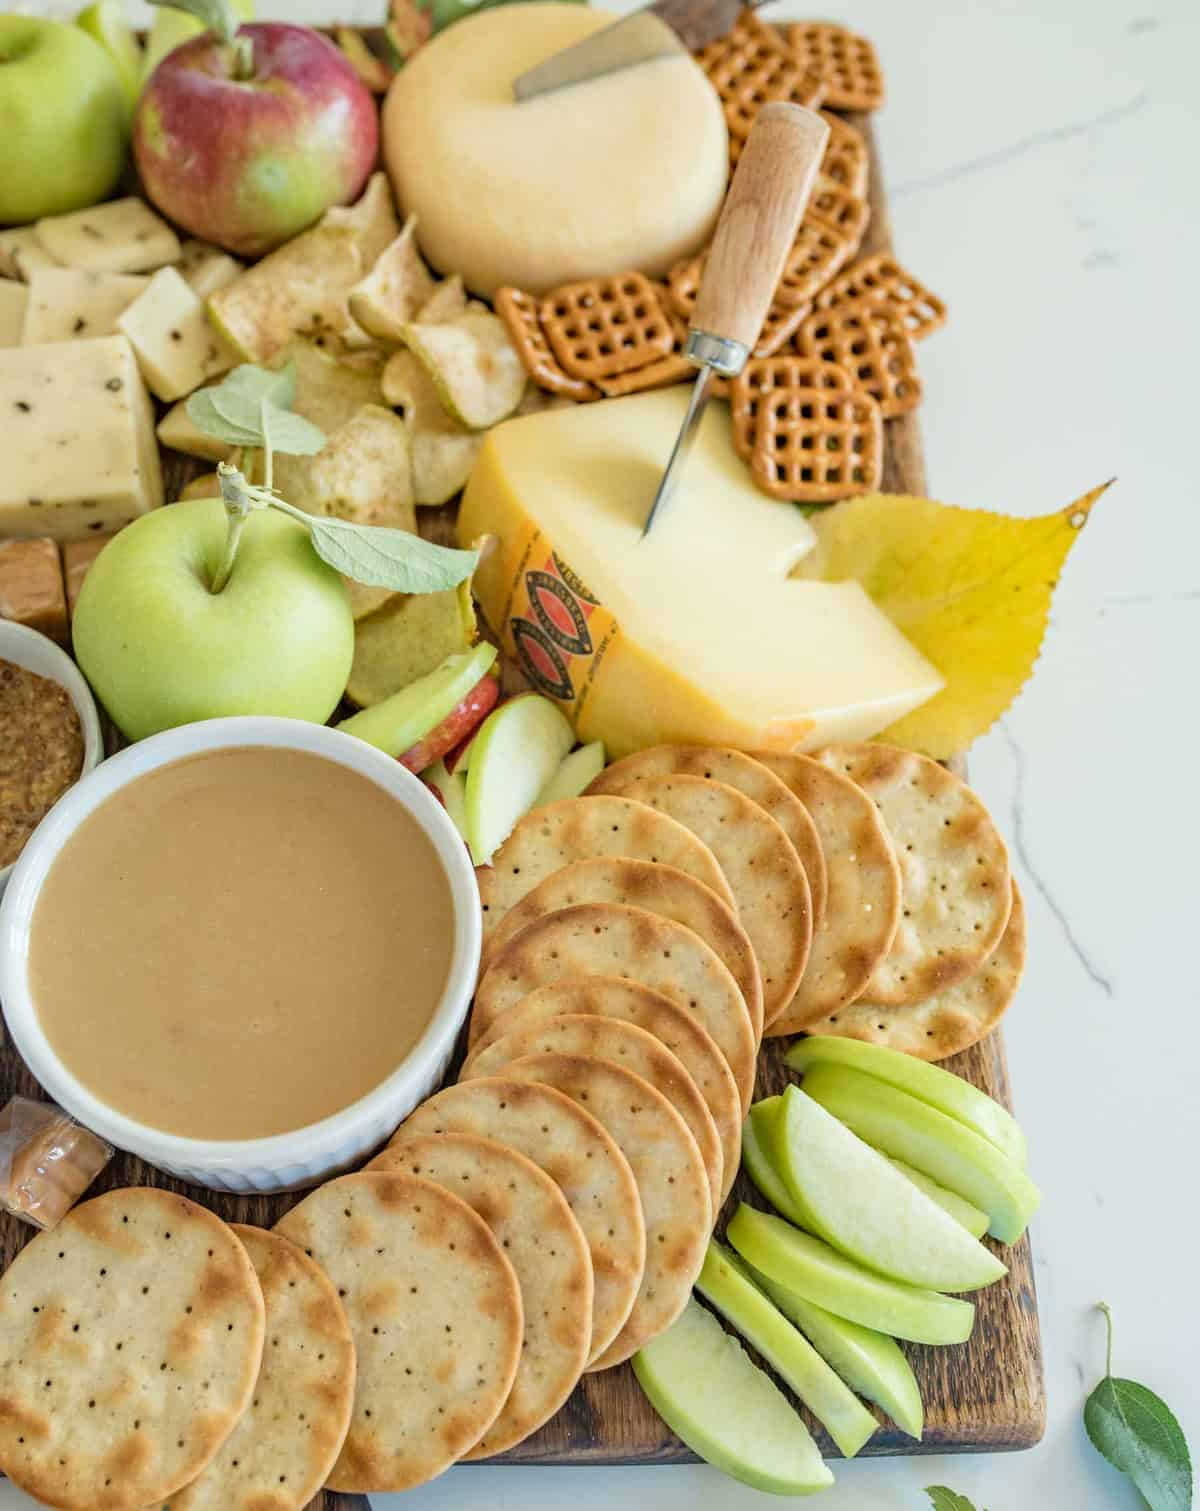 How to make a simple fall apple and cheese board that is perfect for snacking, an appetizer, parties, or just a slow evening in.